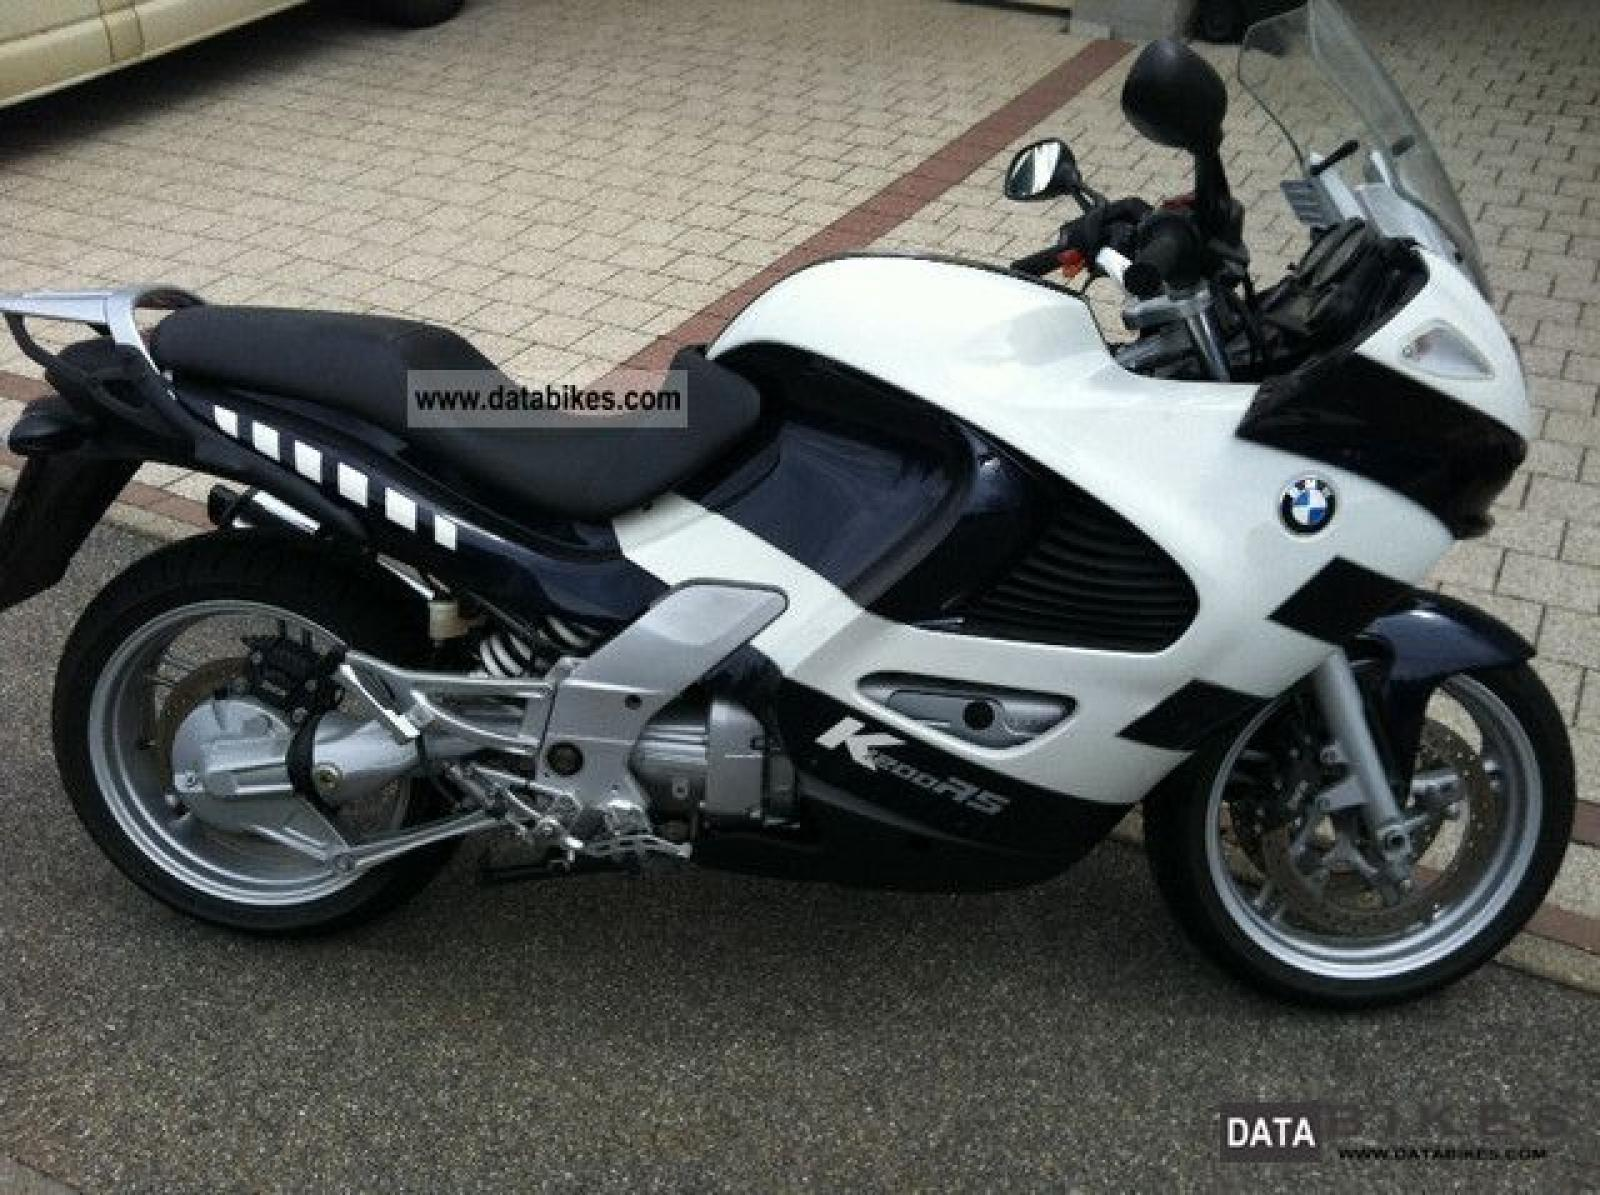 BMW K1200RS 2003 images #6924